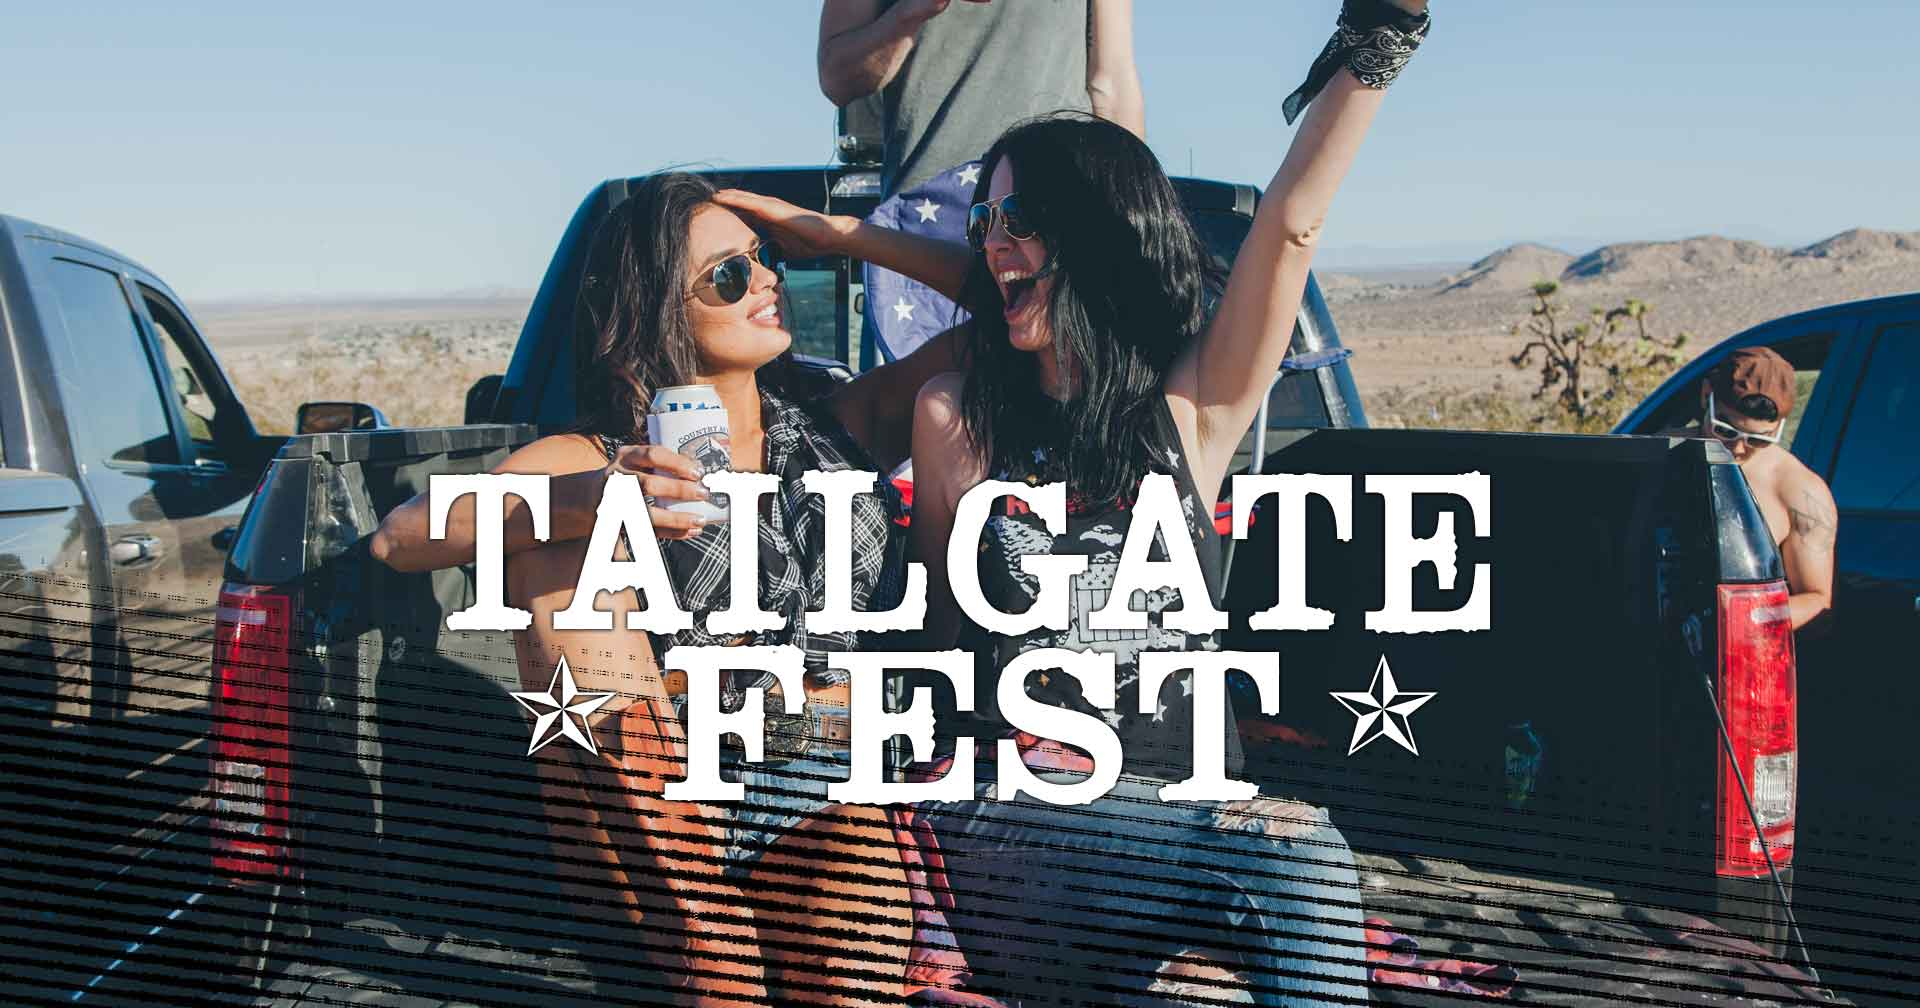 About Tailgate Fest in Eastvale CA - August 17th & 18th 2019